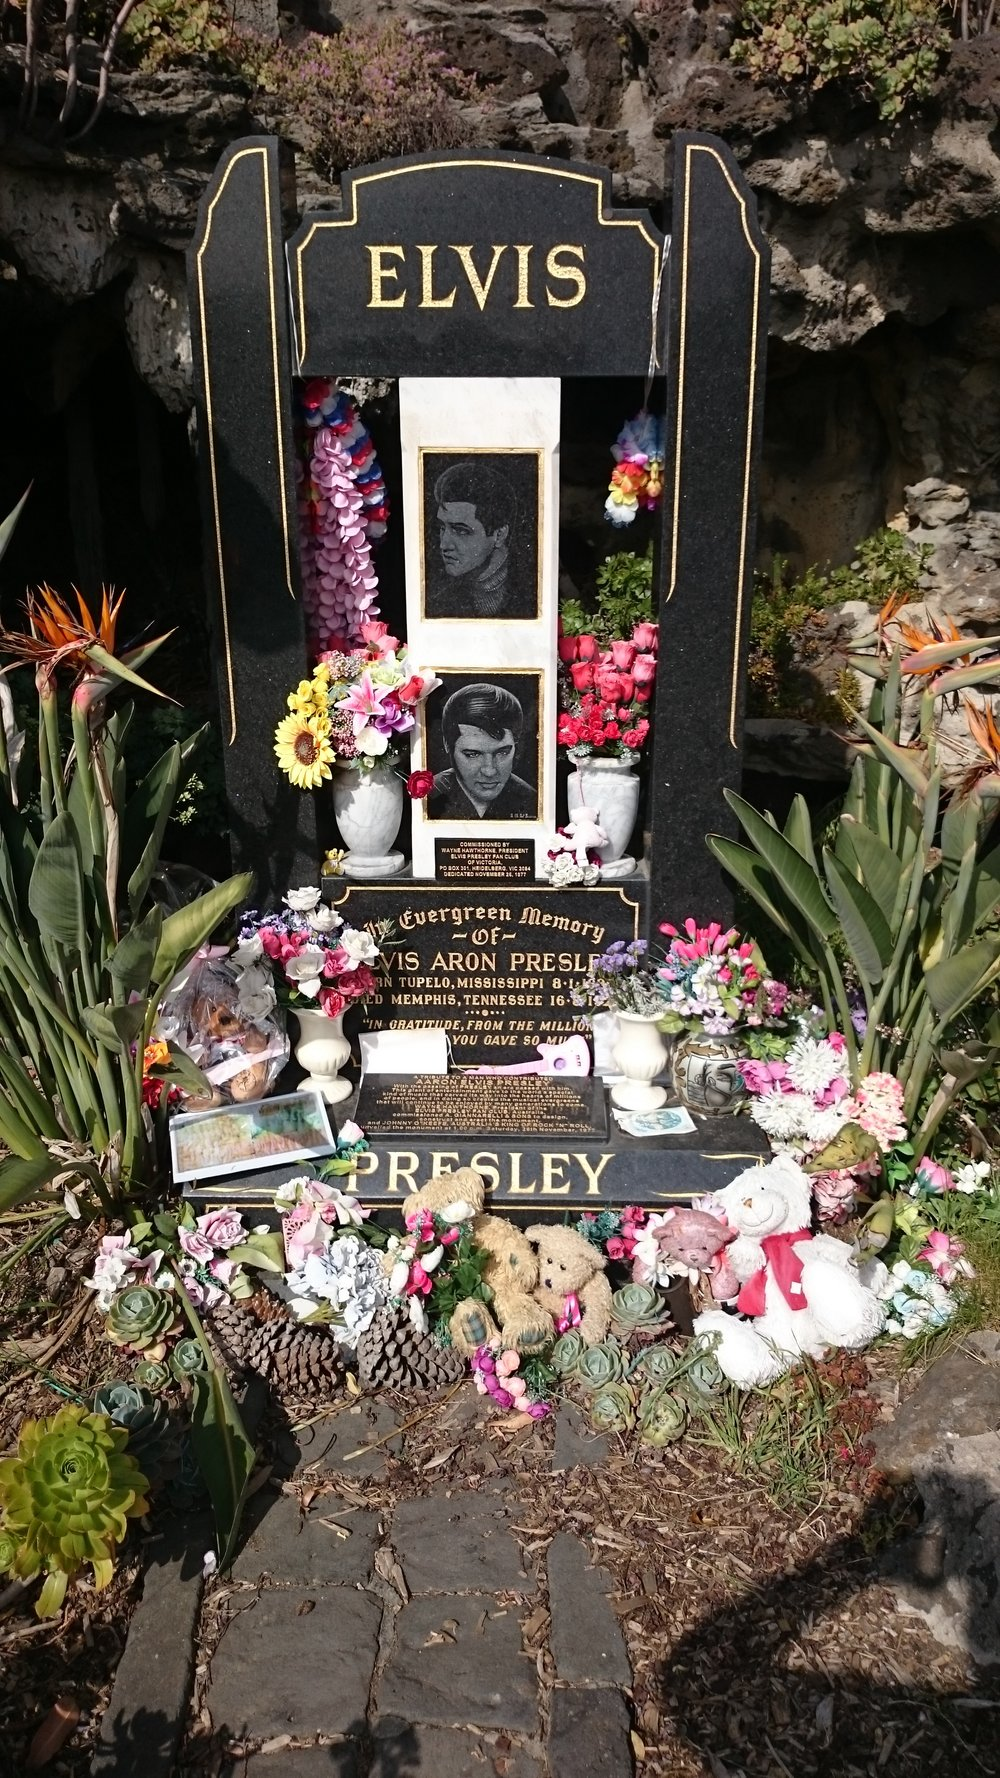 The memorial in the Melbourne General Cemetery.